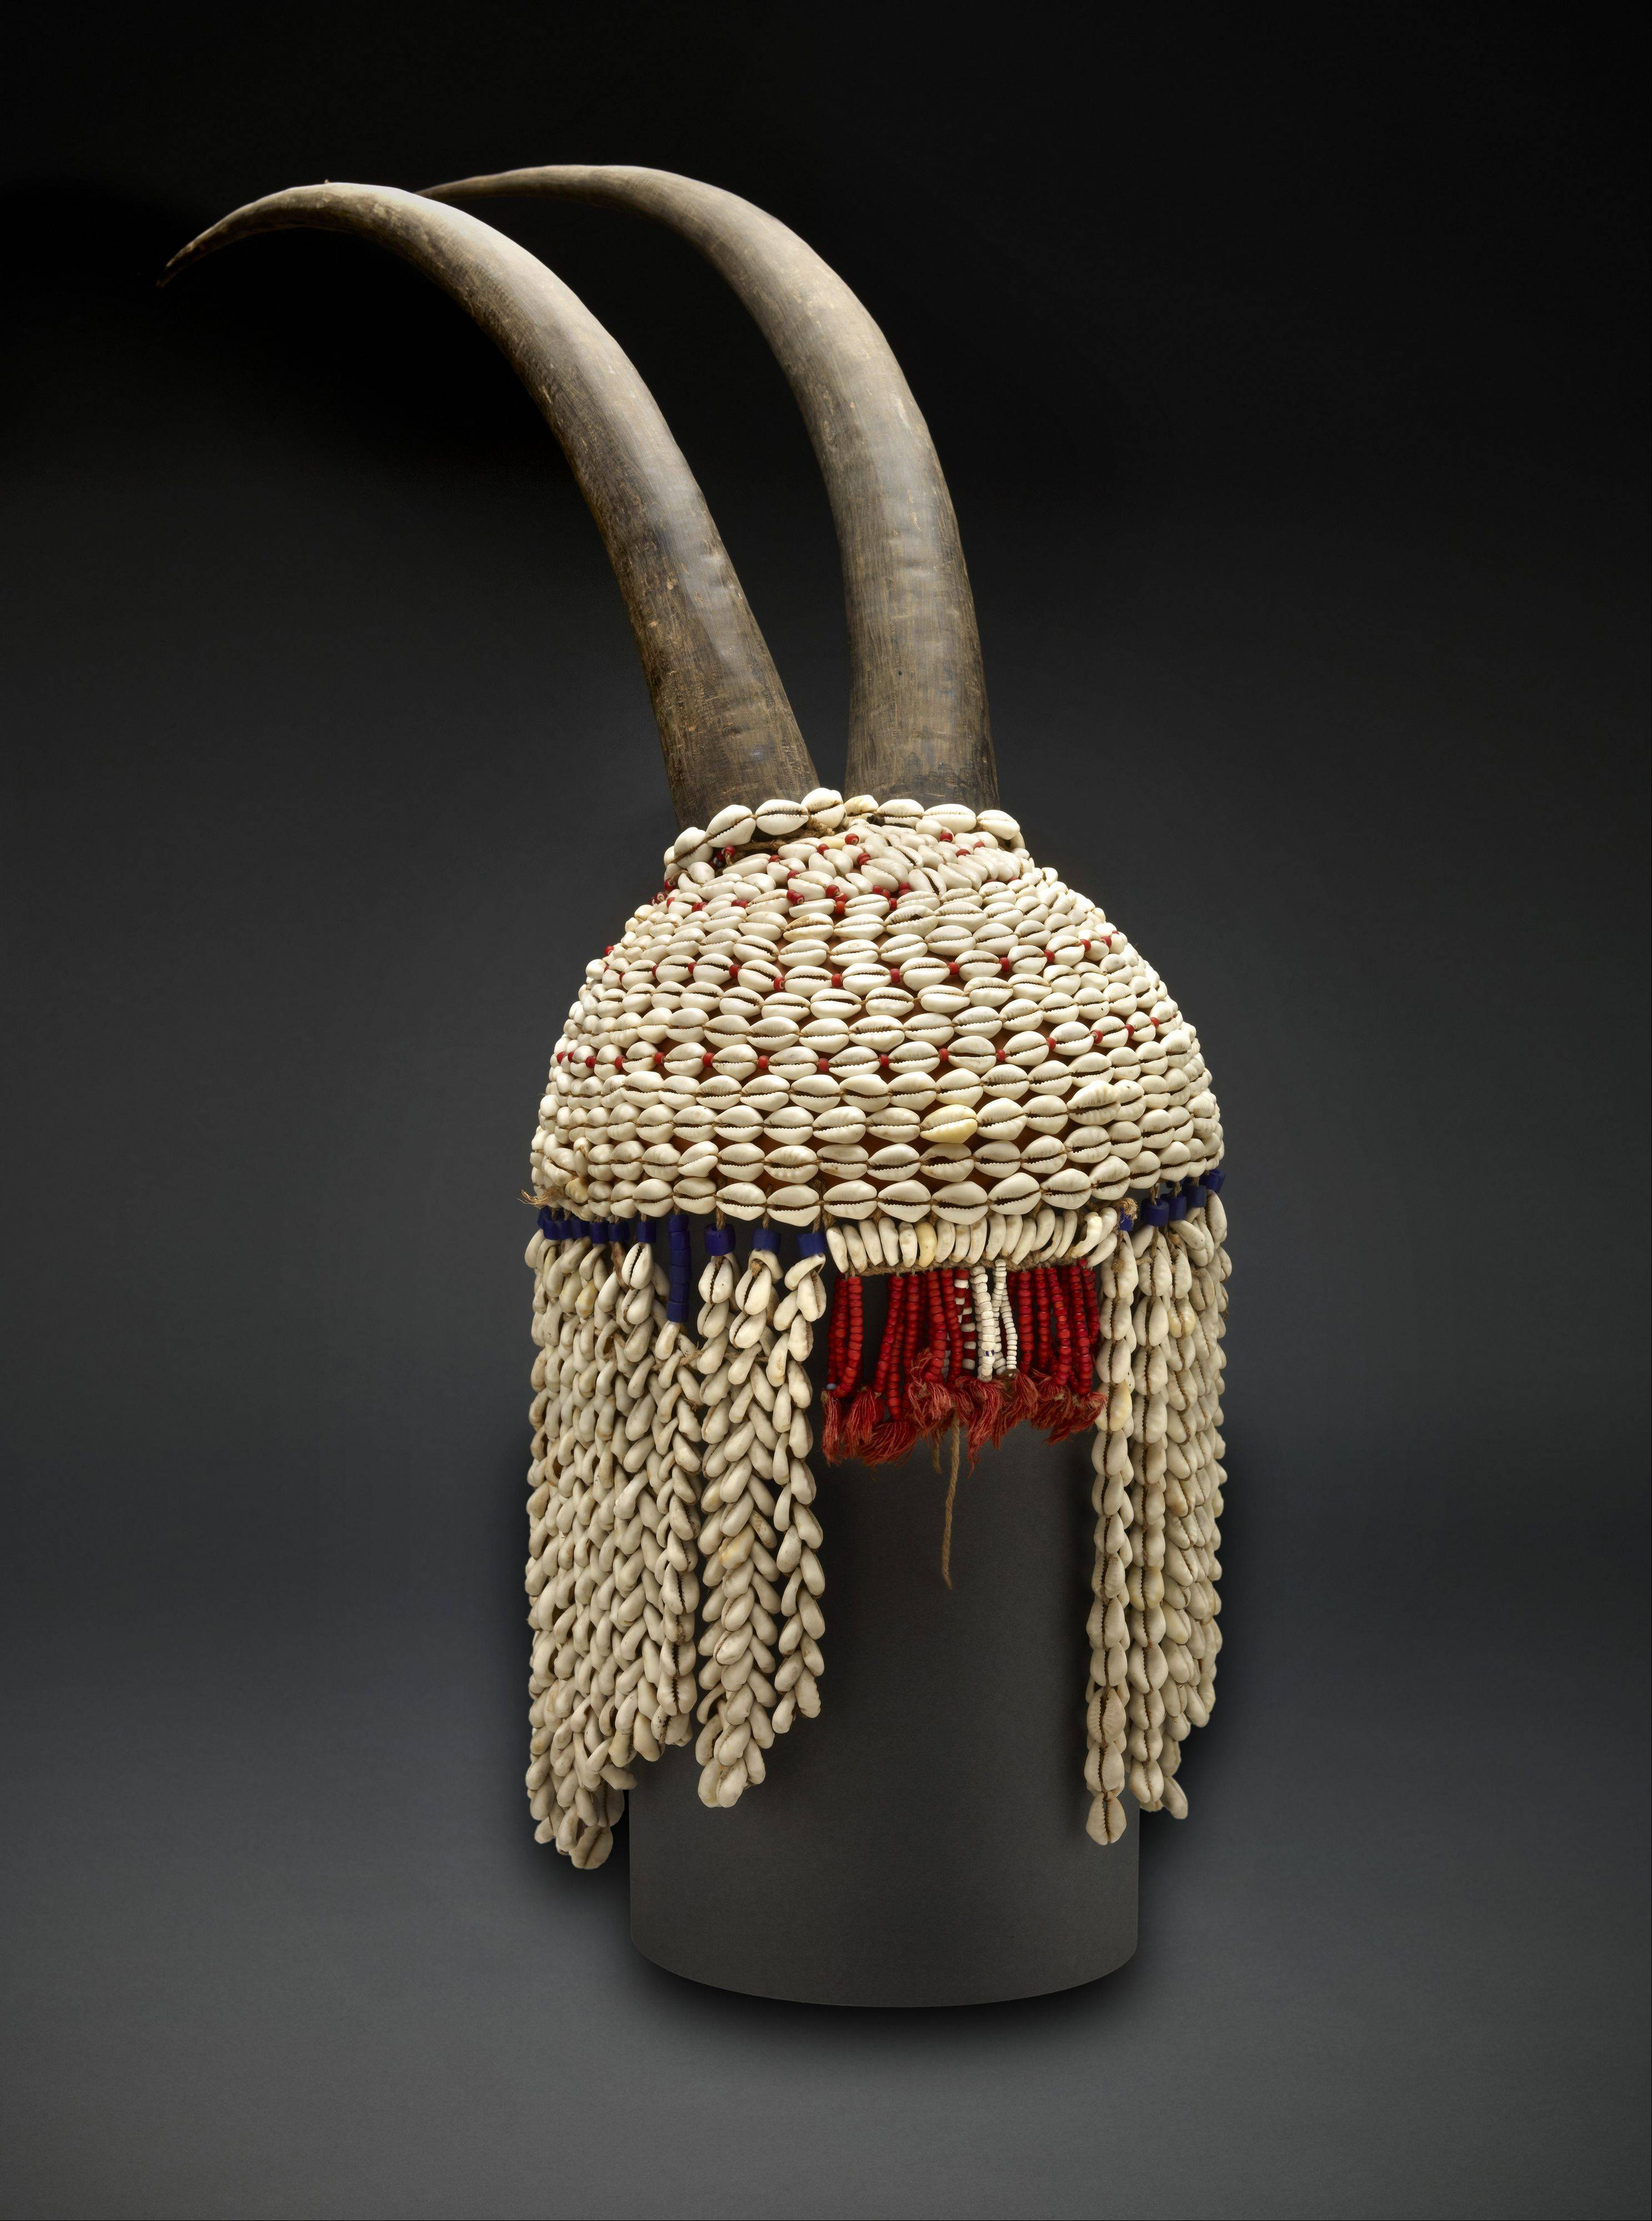 Cowries, the shells of a marine snail, have been valued for thousands of years all over the world. This headdress from Togo combines the smooth beauty of the shells with the horns of an antelope.